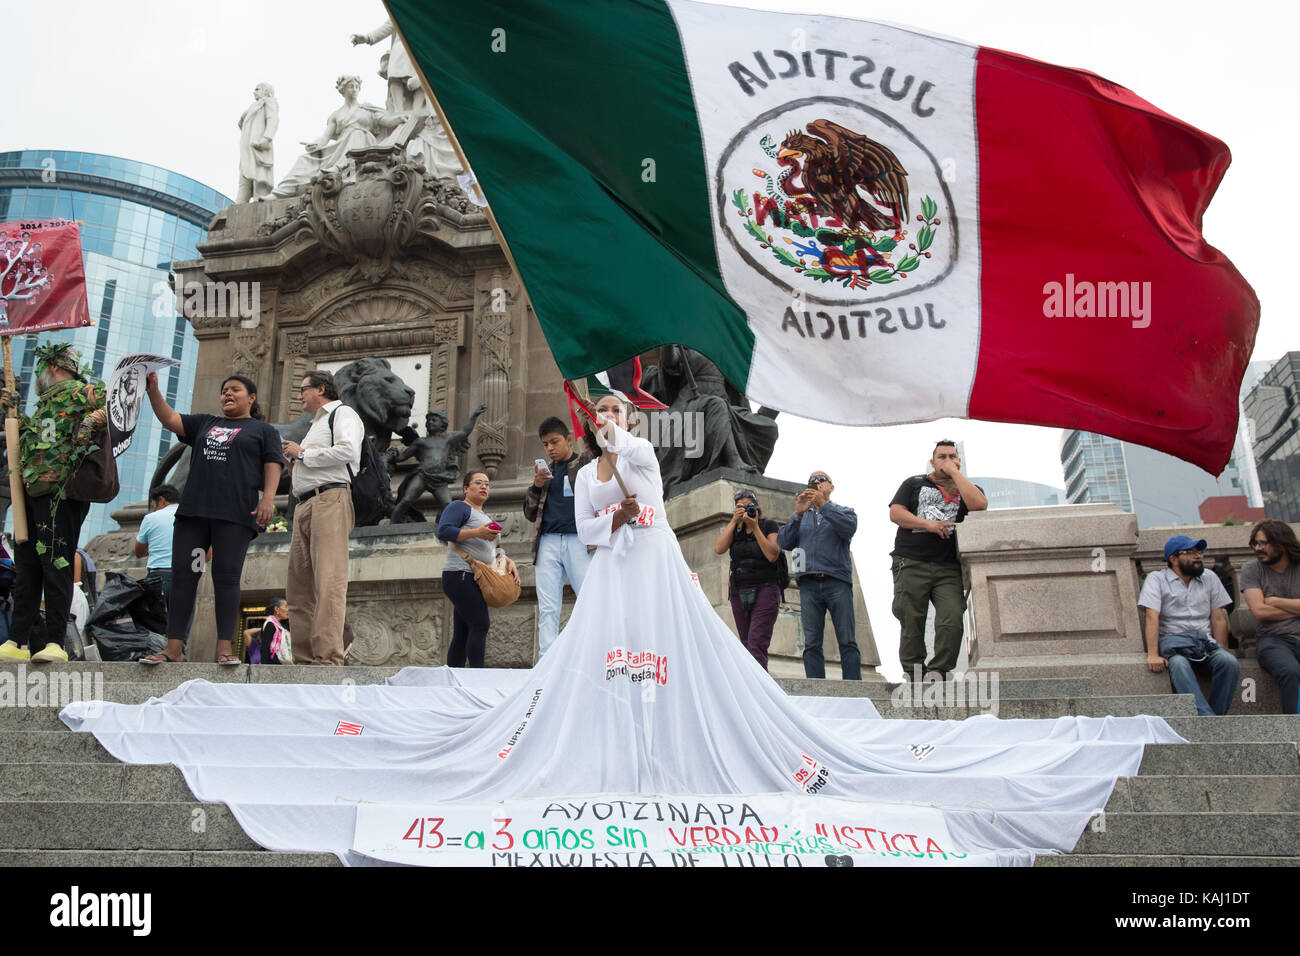 Mexico City, Mexico. 26th Sep, 2017. People march to mark the three-year anniversary of the disappearance of the Stock Photo